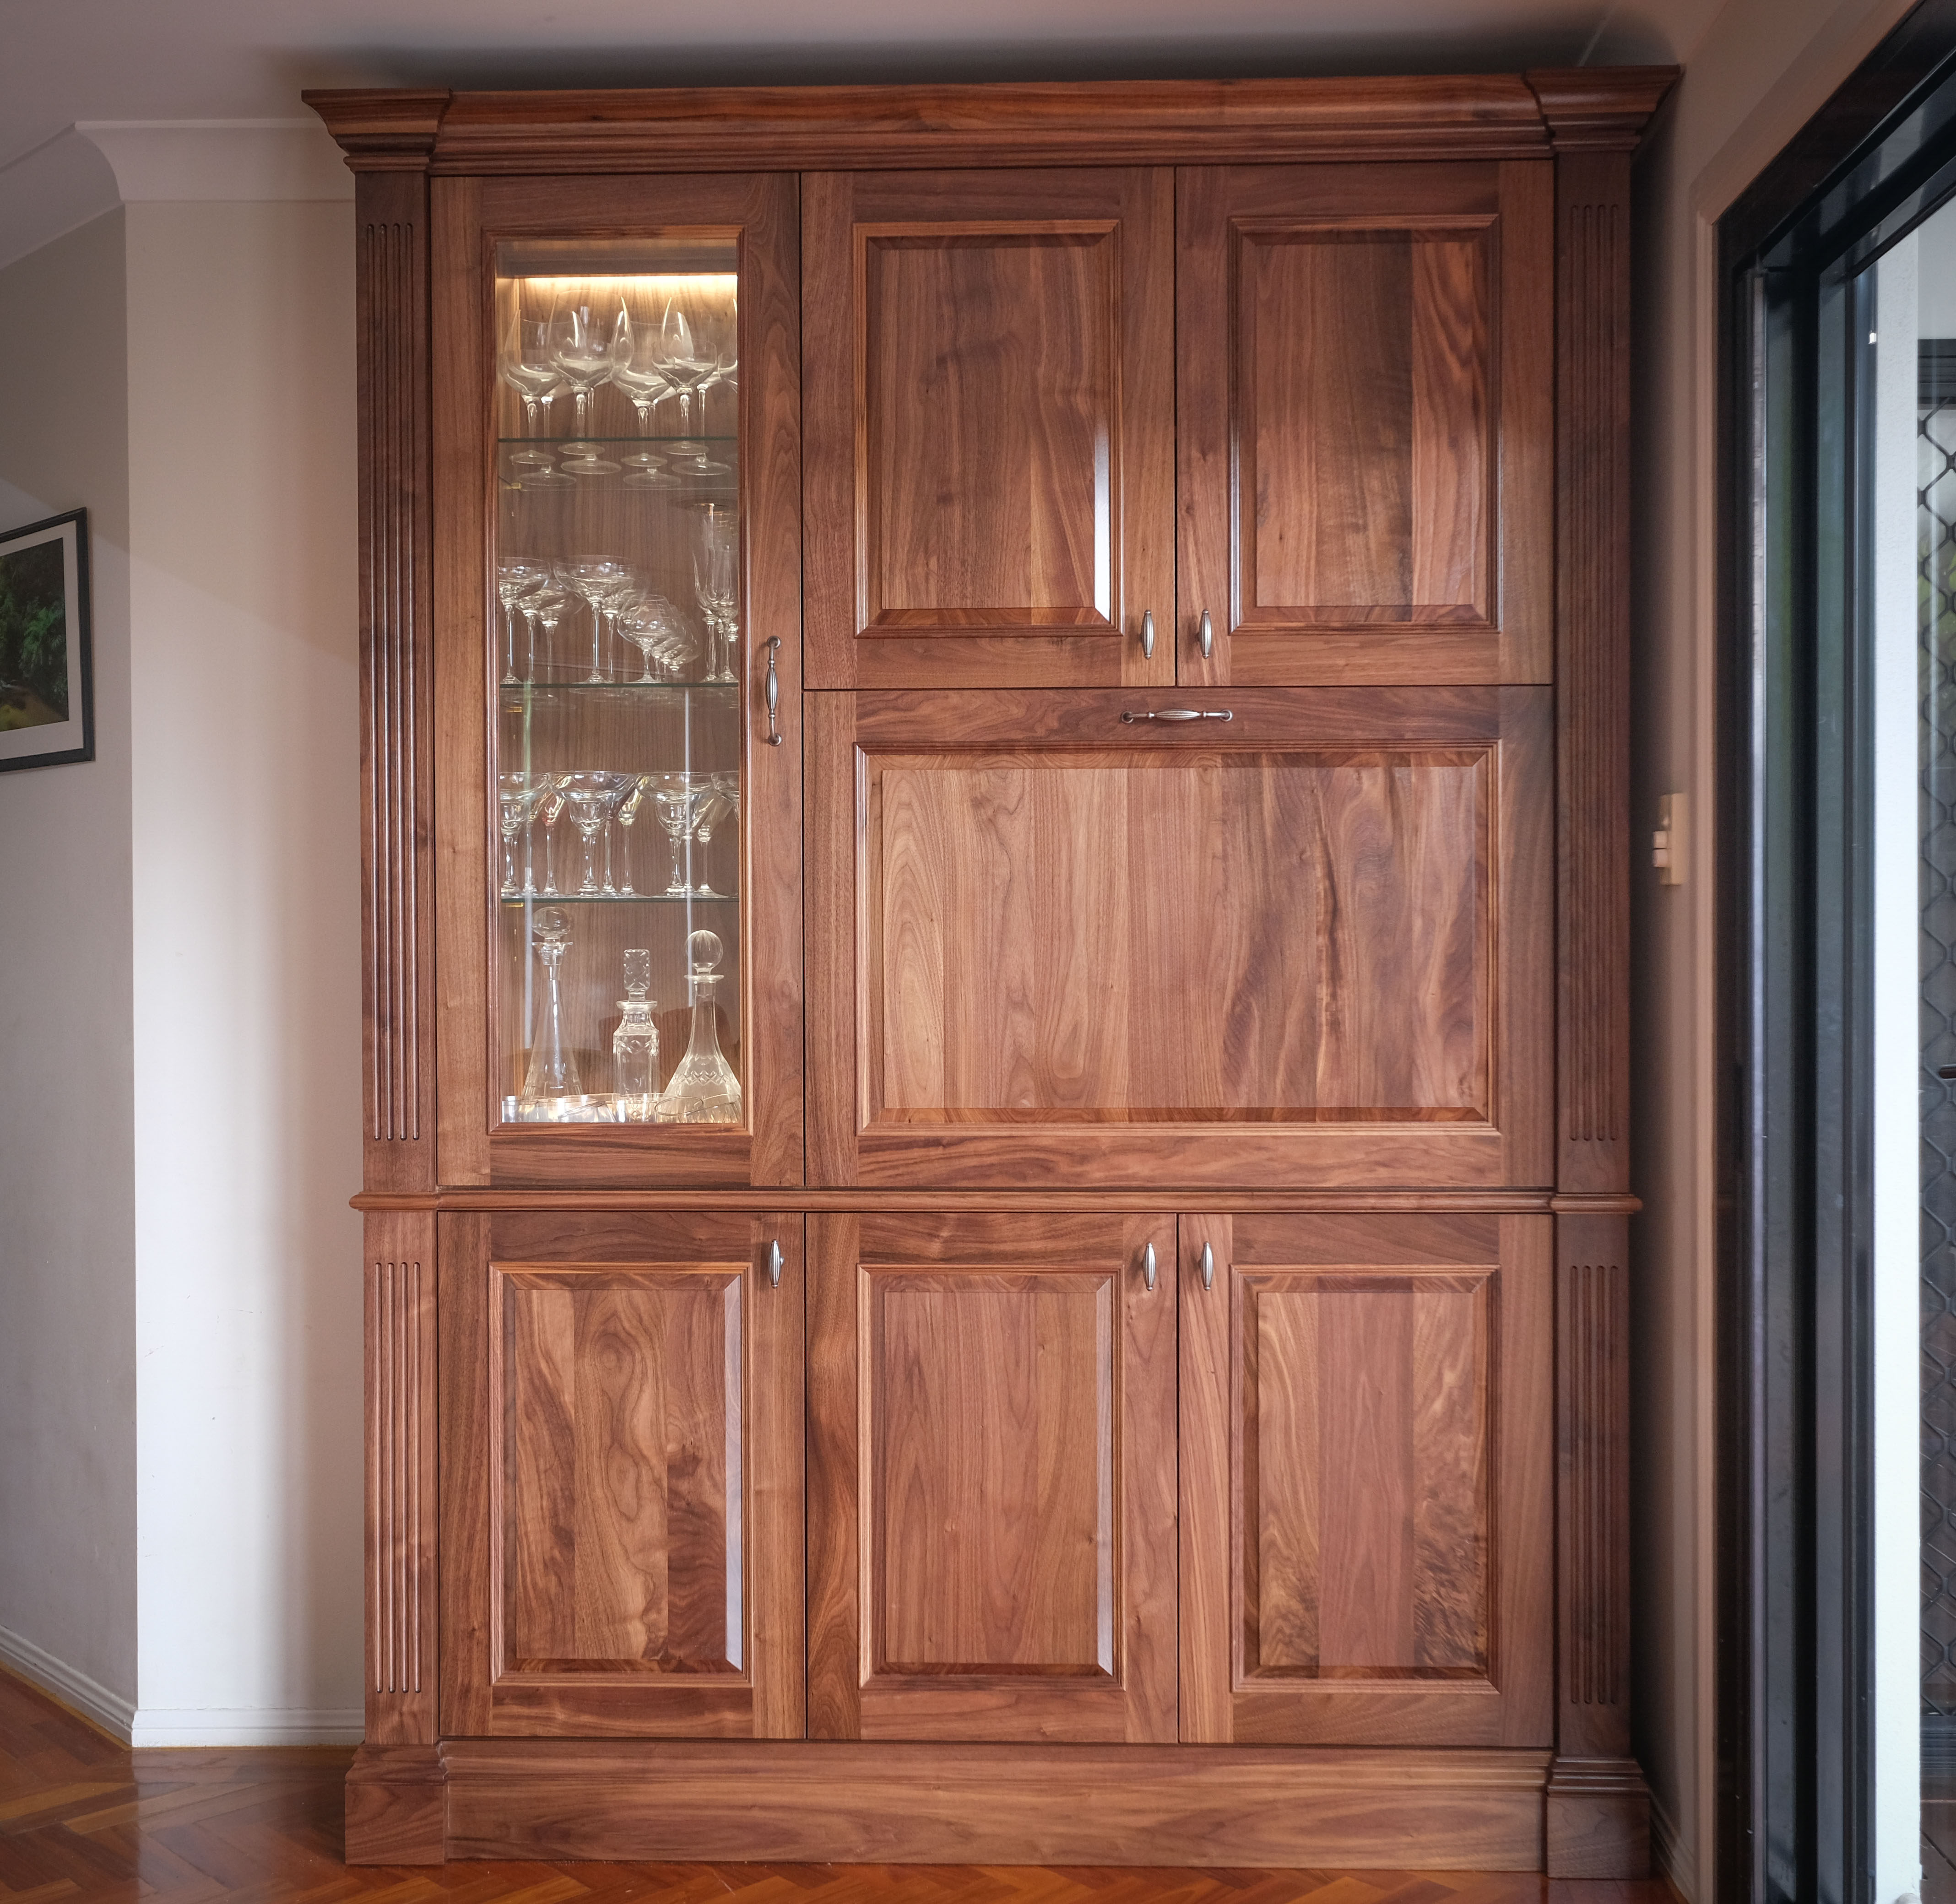 BarCabinet-1a